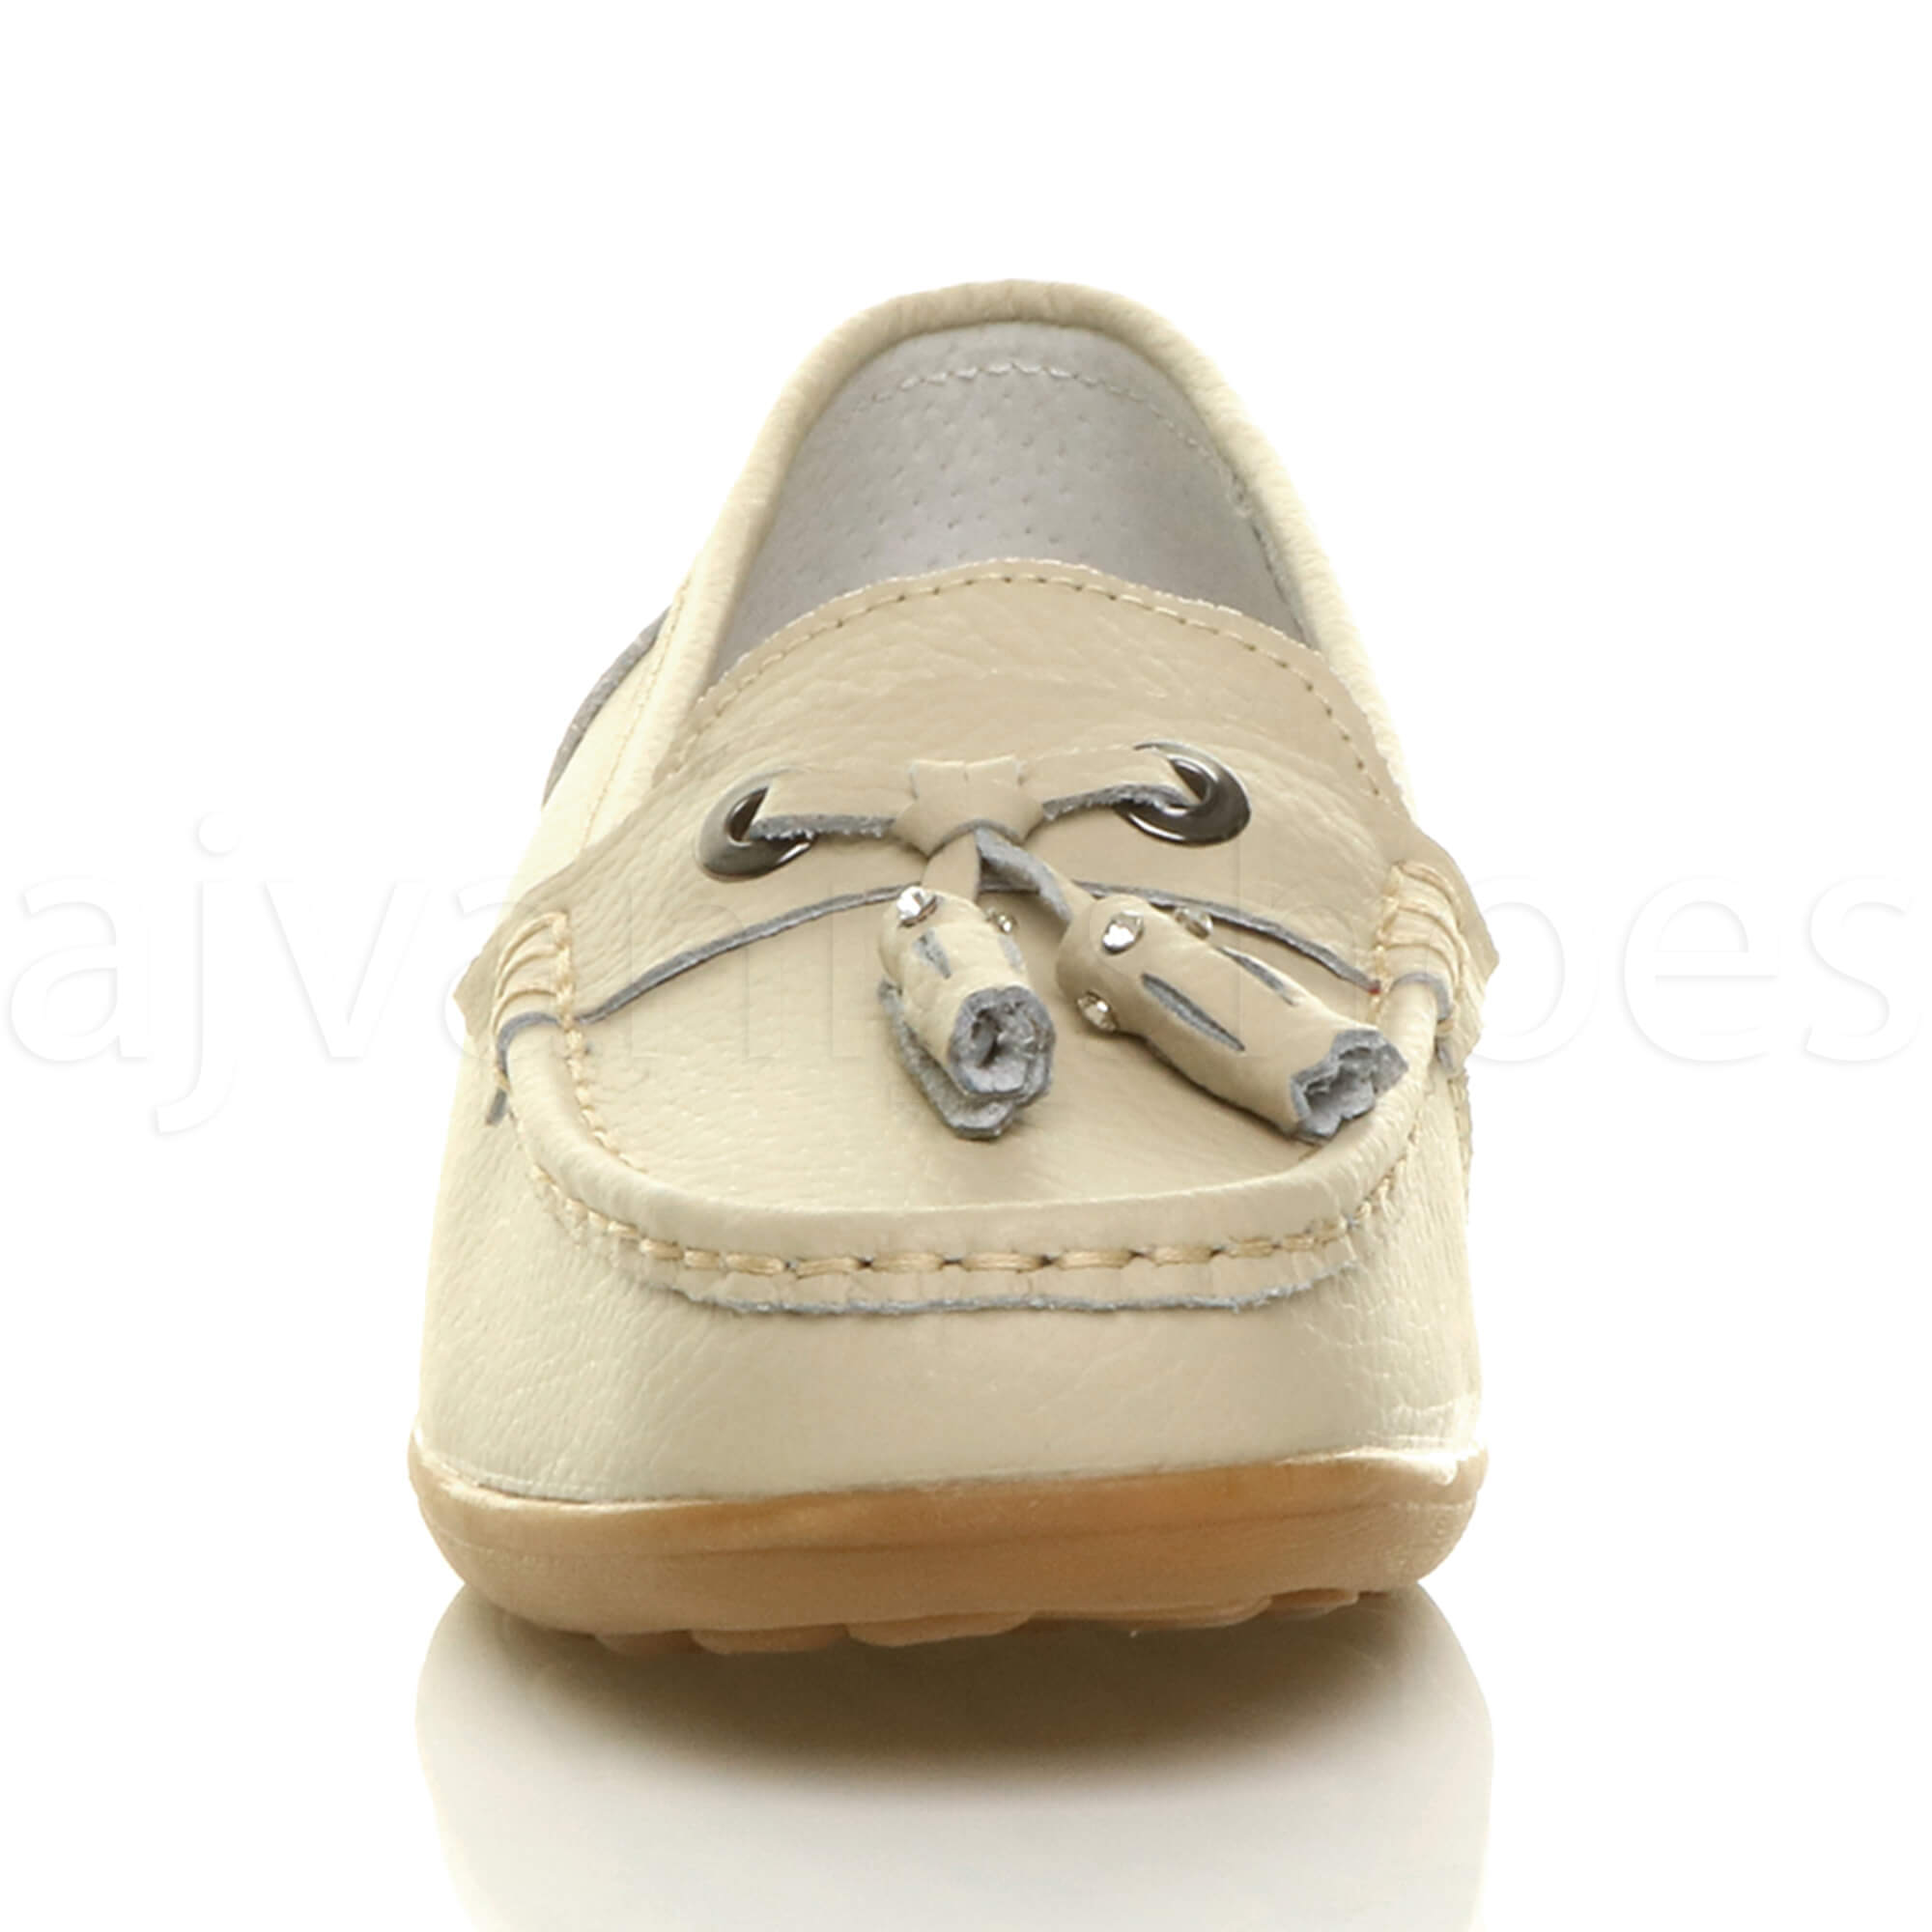 WOMENS-LADIES-LOW-HEEL-WEDGE-LEATHER-TASSEL-LOAFERS-COMFORT-MOCCASINS-SHOES-SIZE thumbnail 7